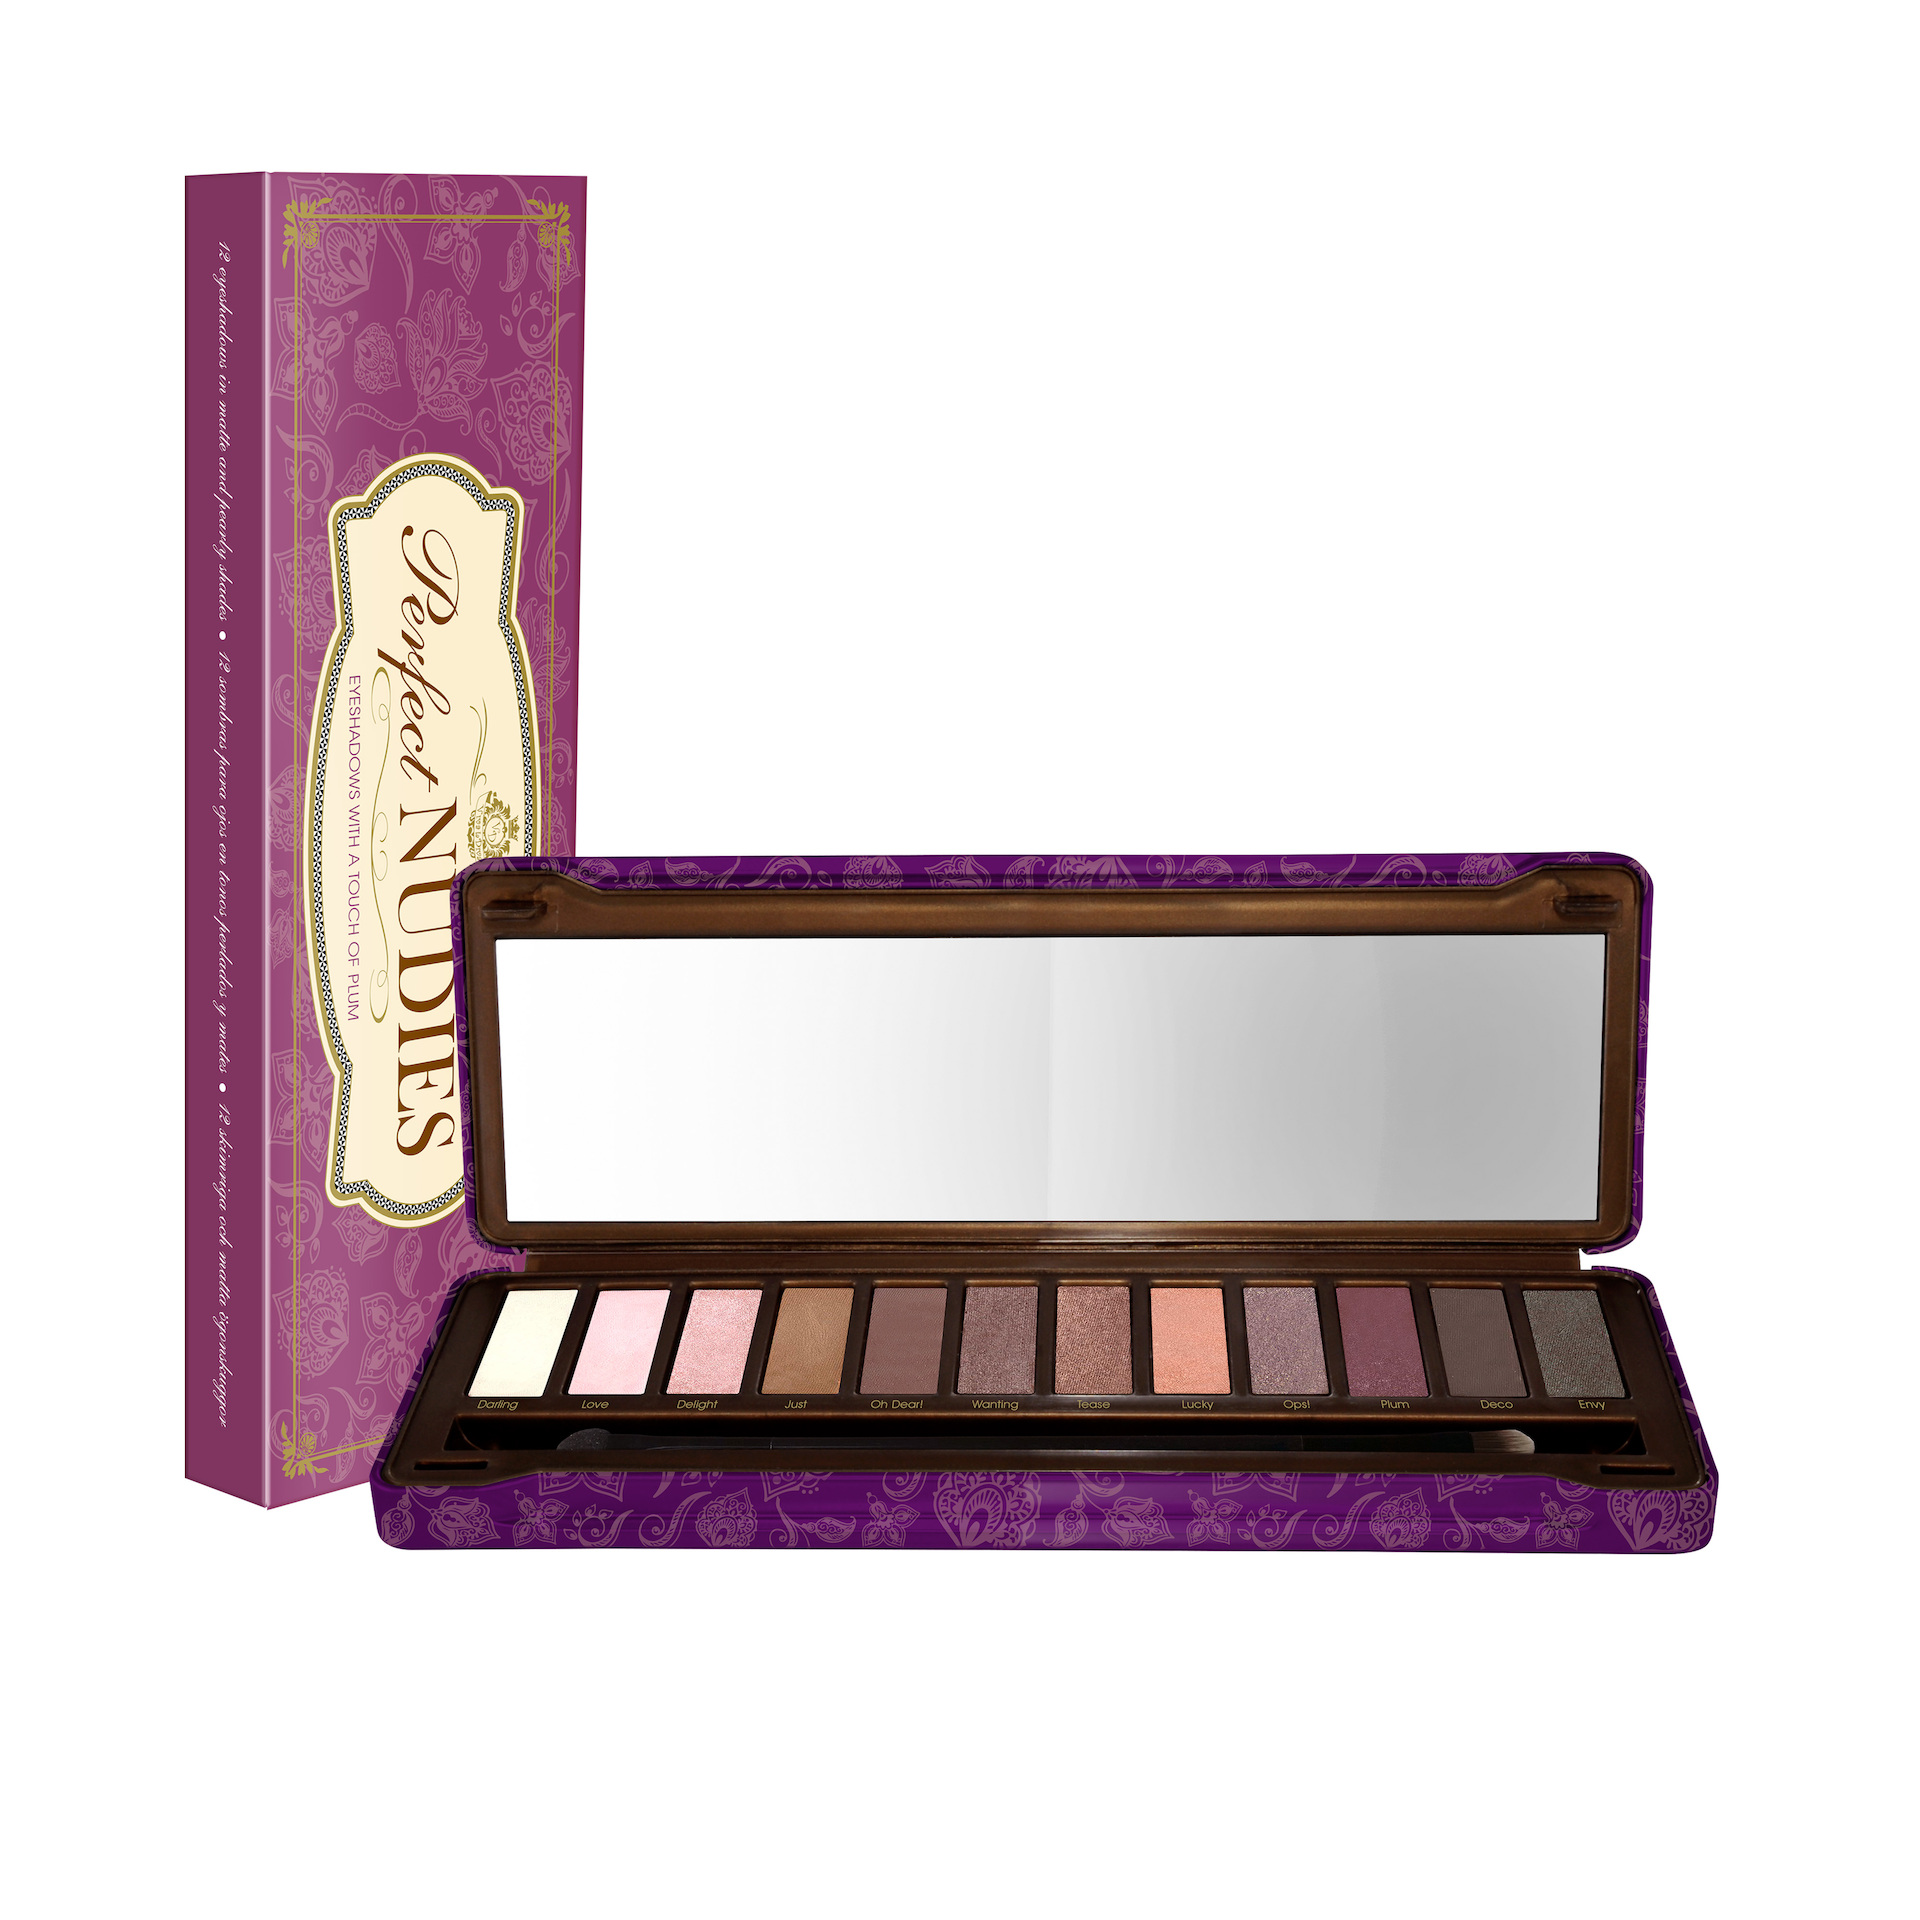 Perfect Nudies - Eyeshadows WIth A Touch Of Plum Perfect Nudies - Eyeshadows With A Touch Of Plum